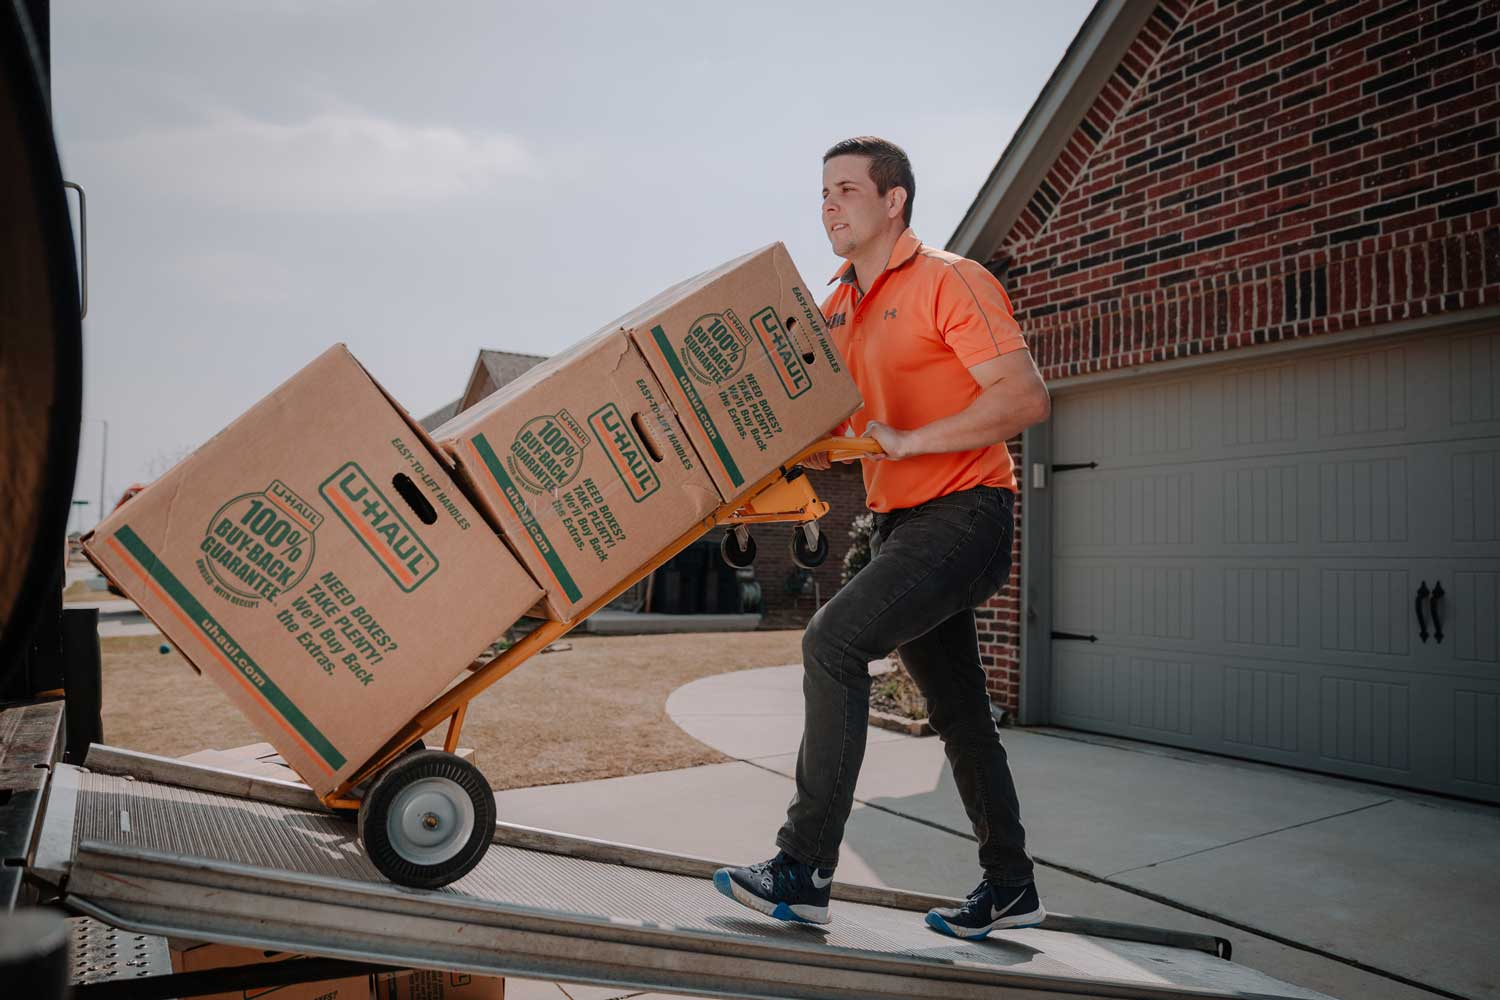 """On Call Junk Haul was great to work with helping my family move and my junk removal. They were friendly, on time, and quick! Will call them again.""  - Lantz Shetley"